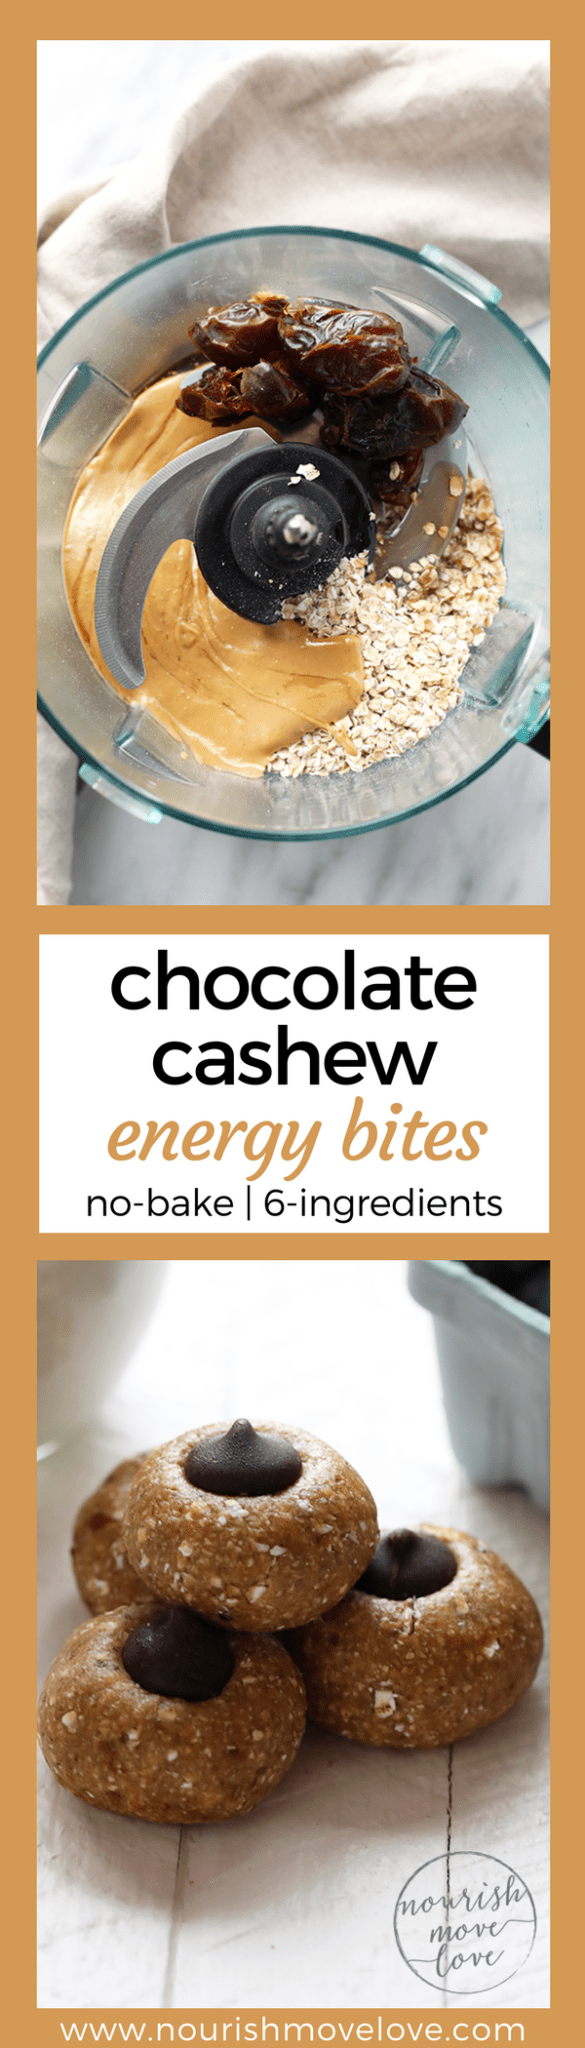 no-bake chocolate cashew lactation cookies | www.nourishmovelove.com